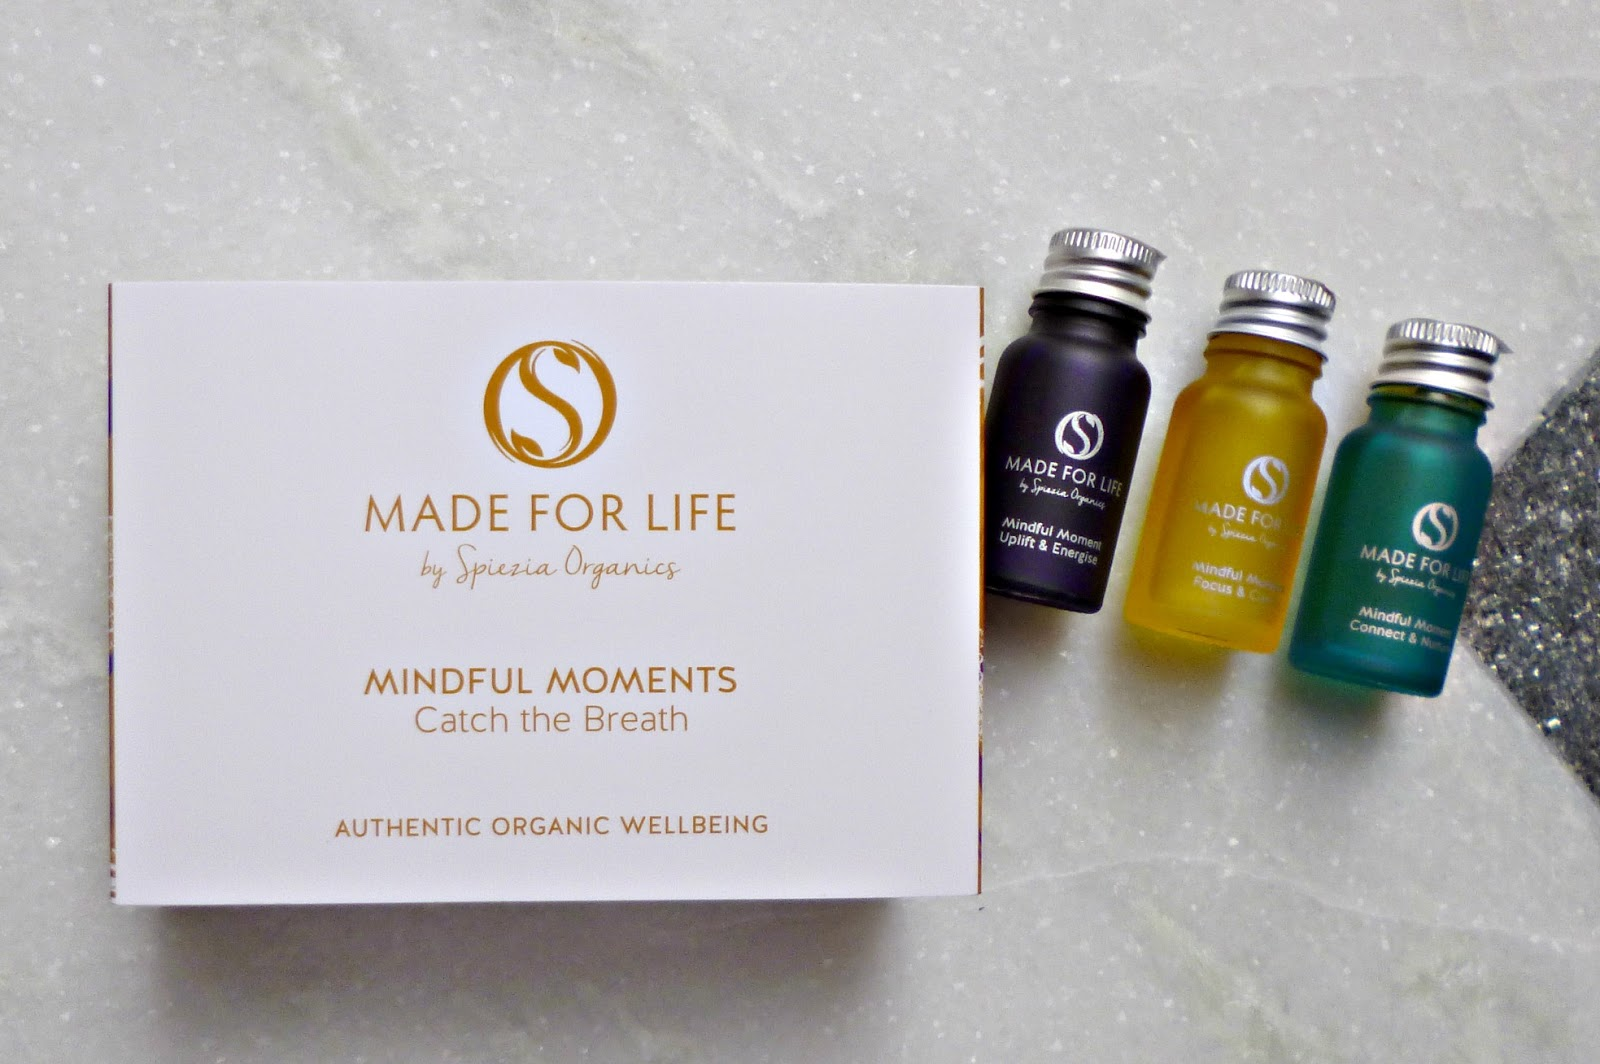 Mindful Moments gift set by Spiezia